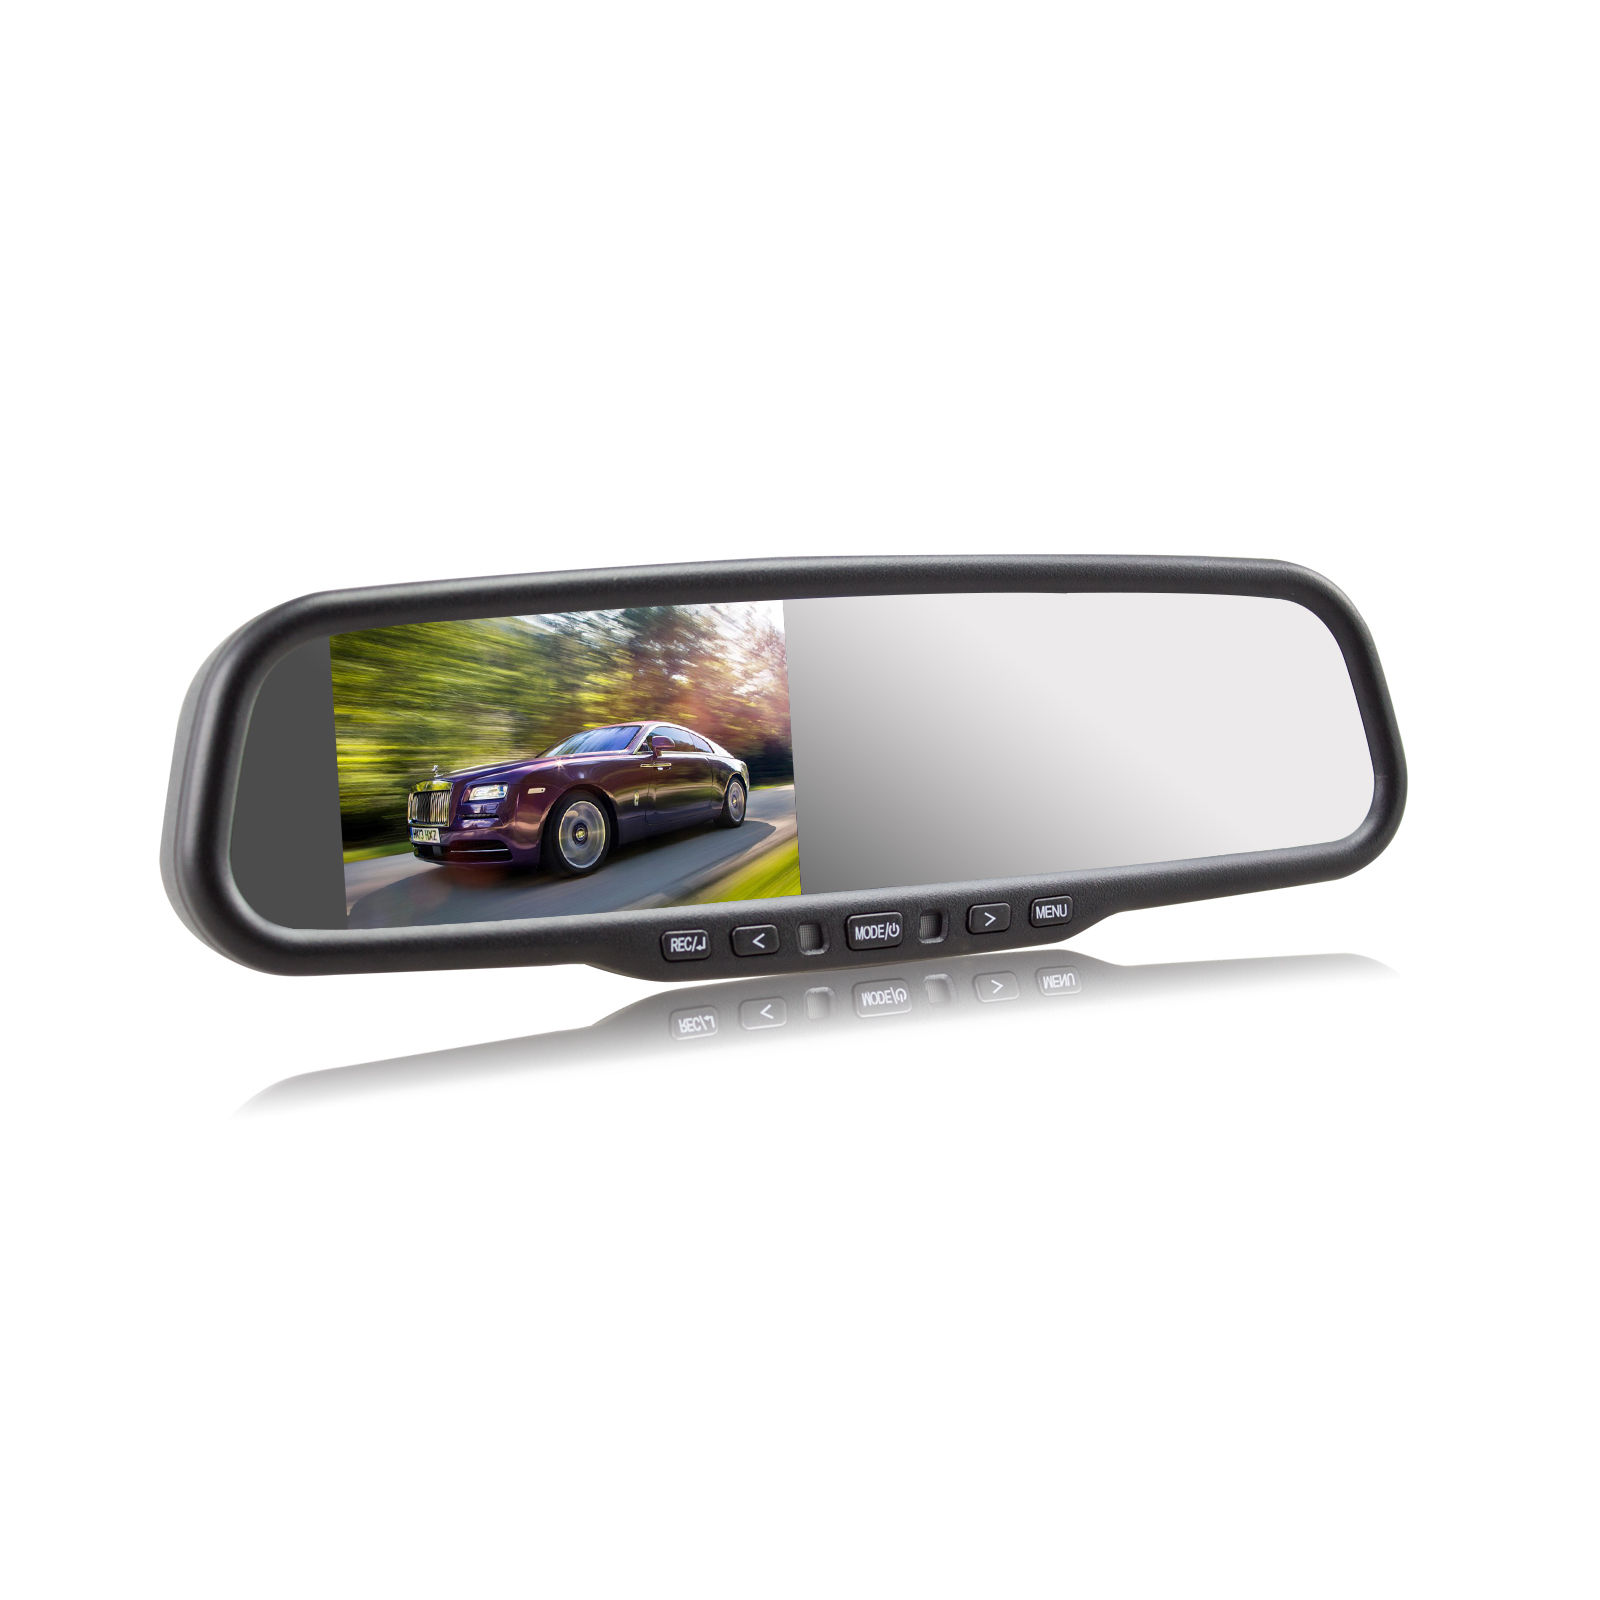 2in1 rear view mirror monitor car dvr video recorder g